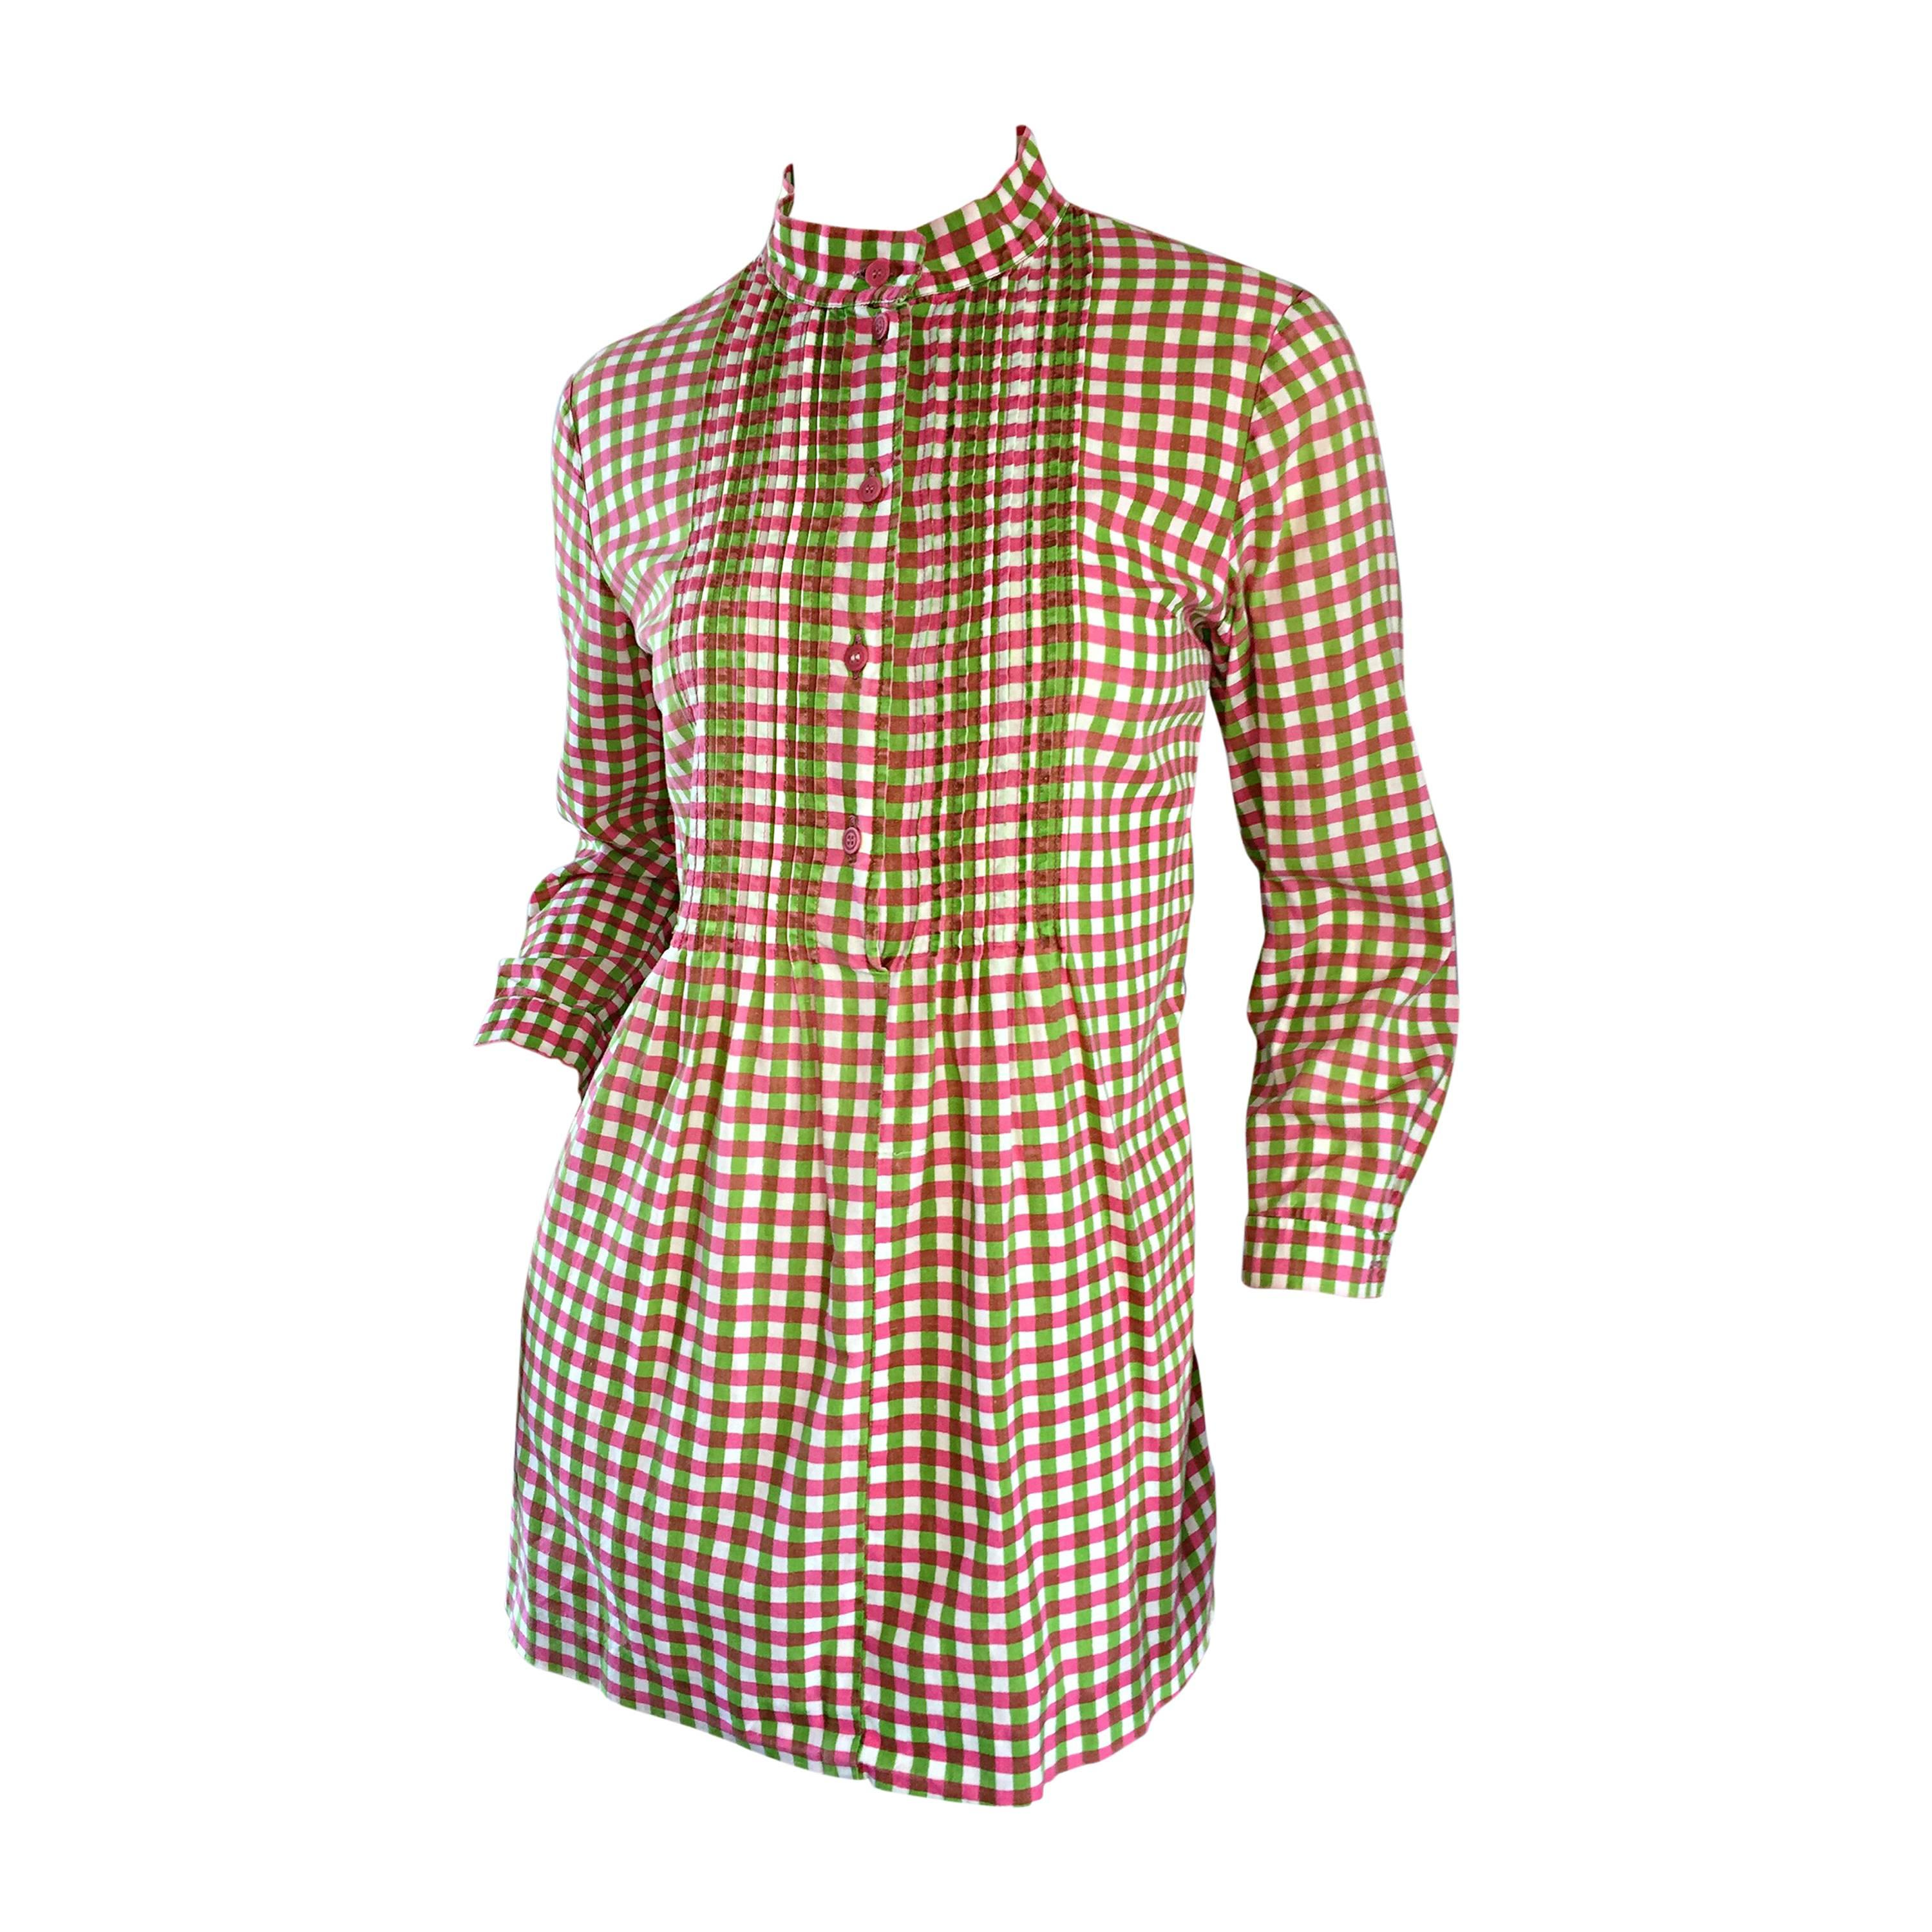 Vintage 1960s Marimekko of Finland 60s Pink and Green Checkered Tunic Mini Dress